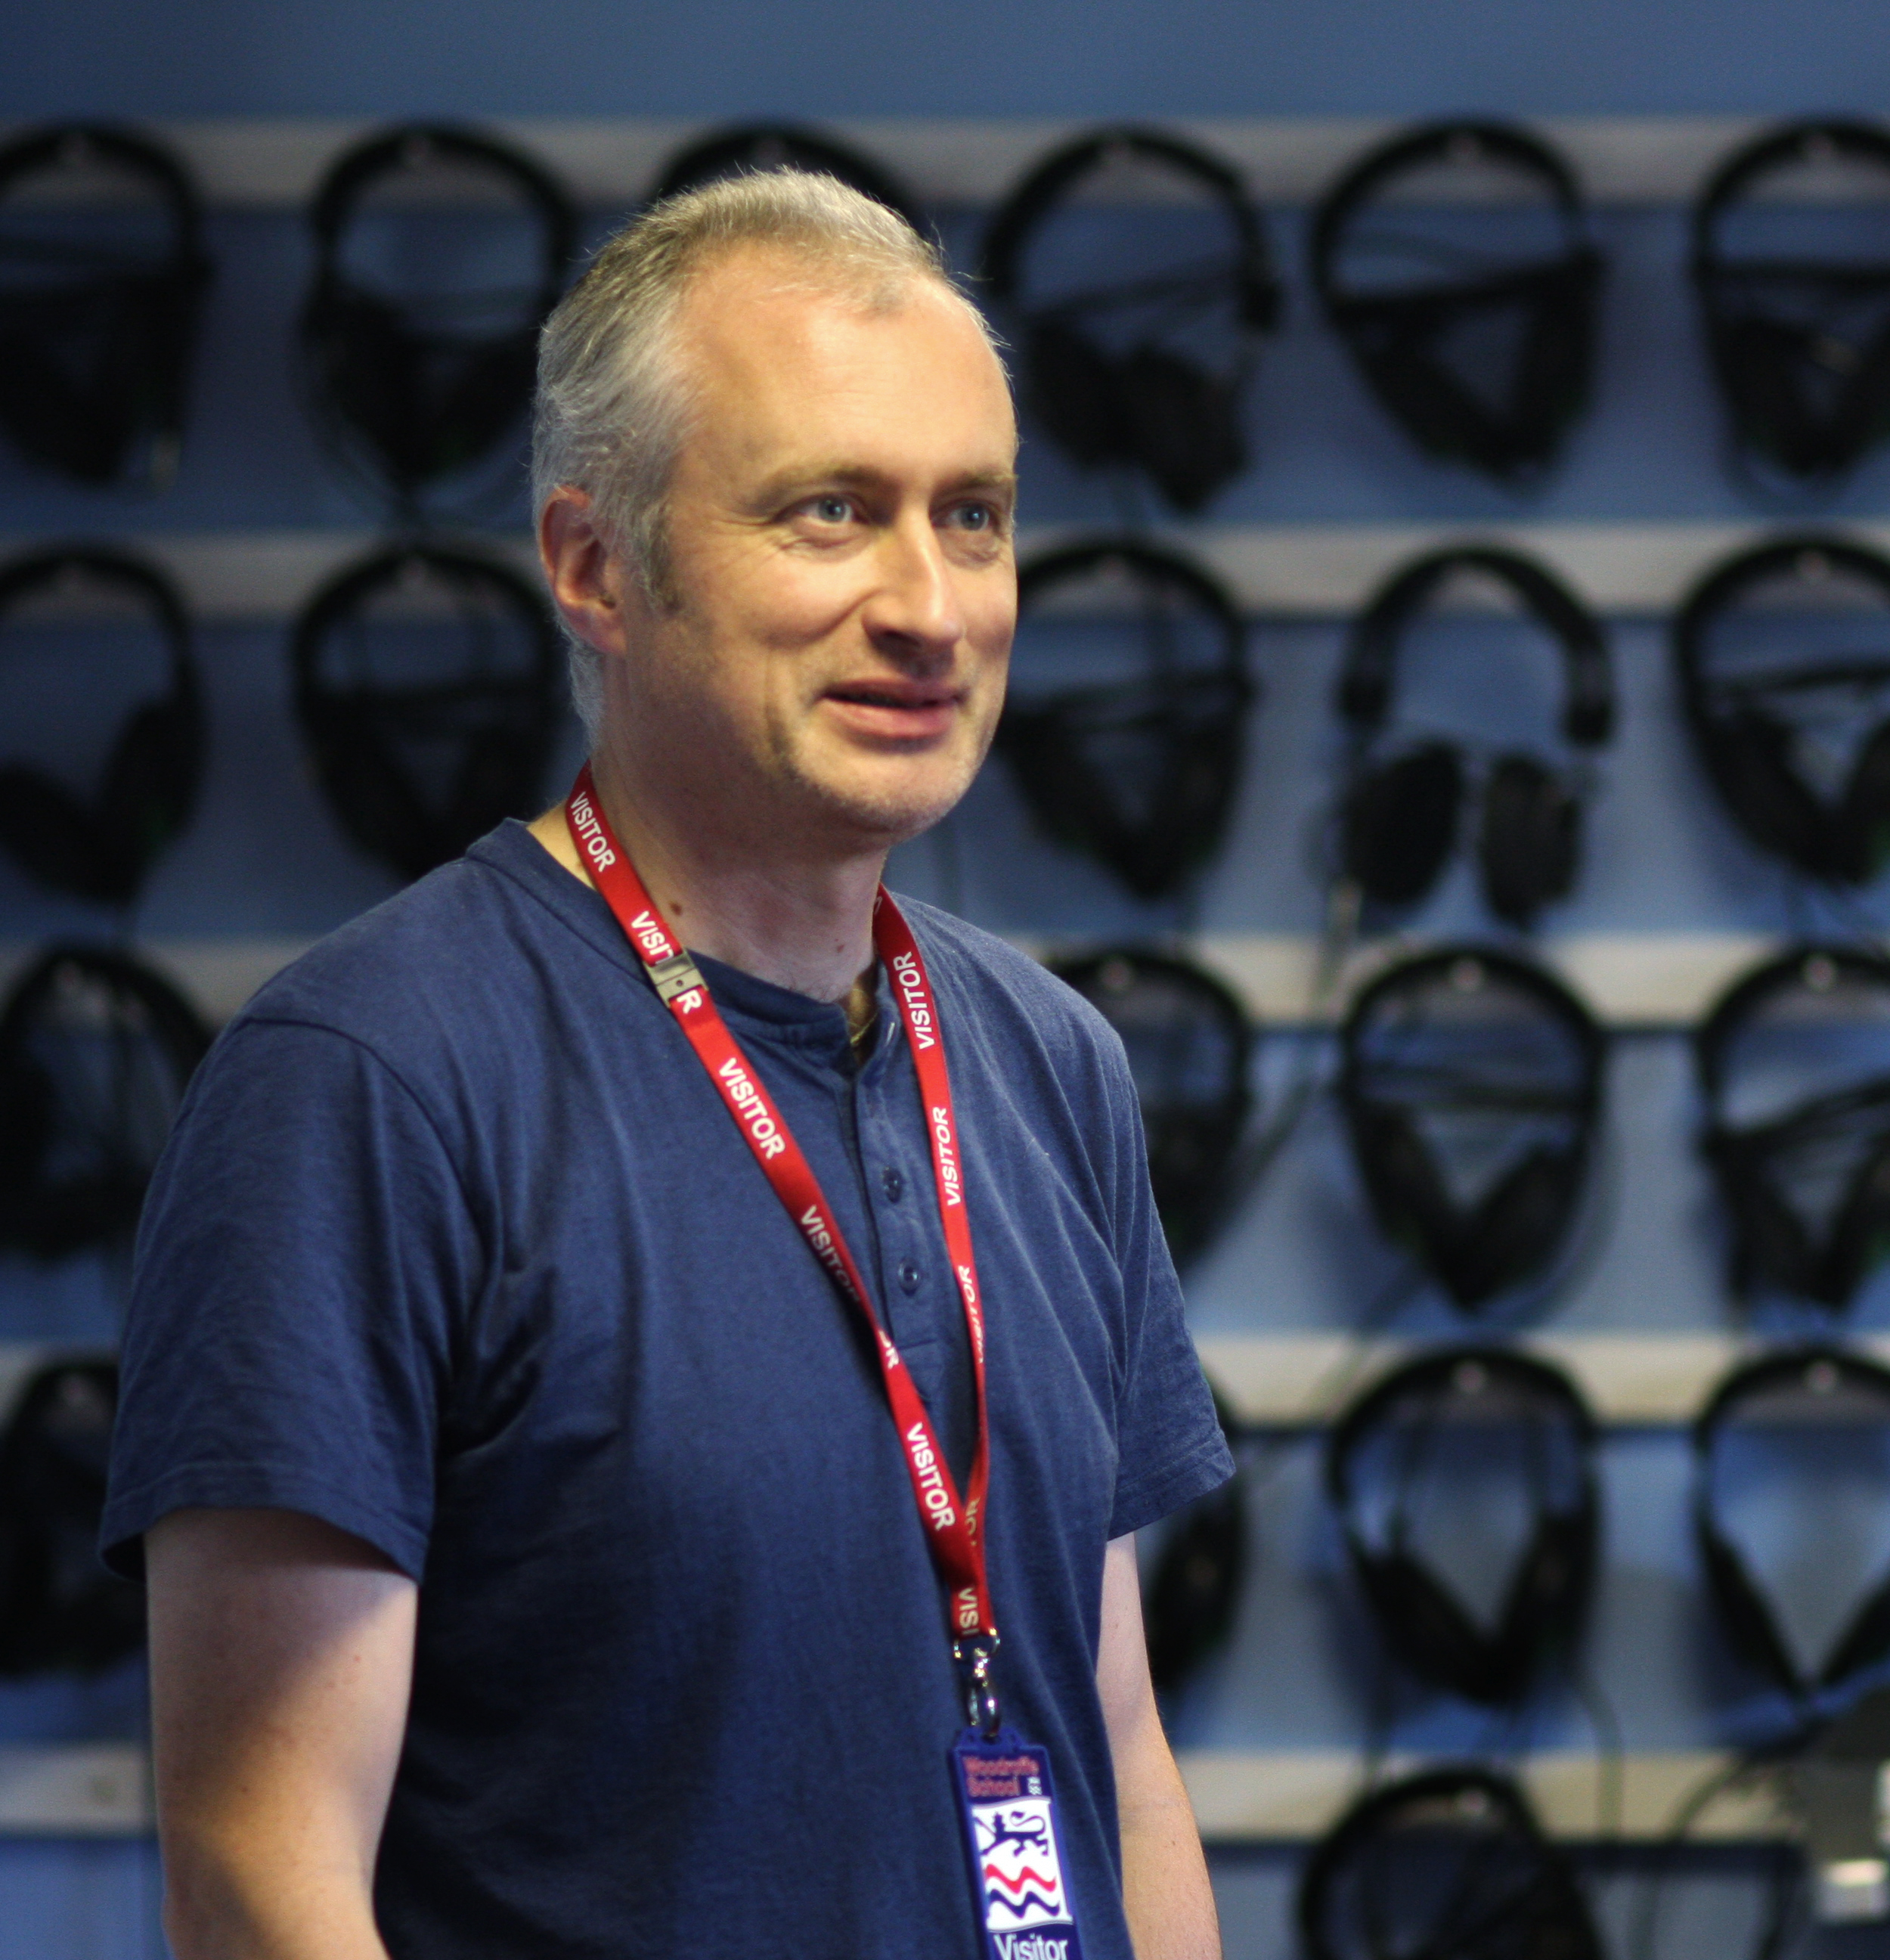 John surrounded by headphones